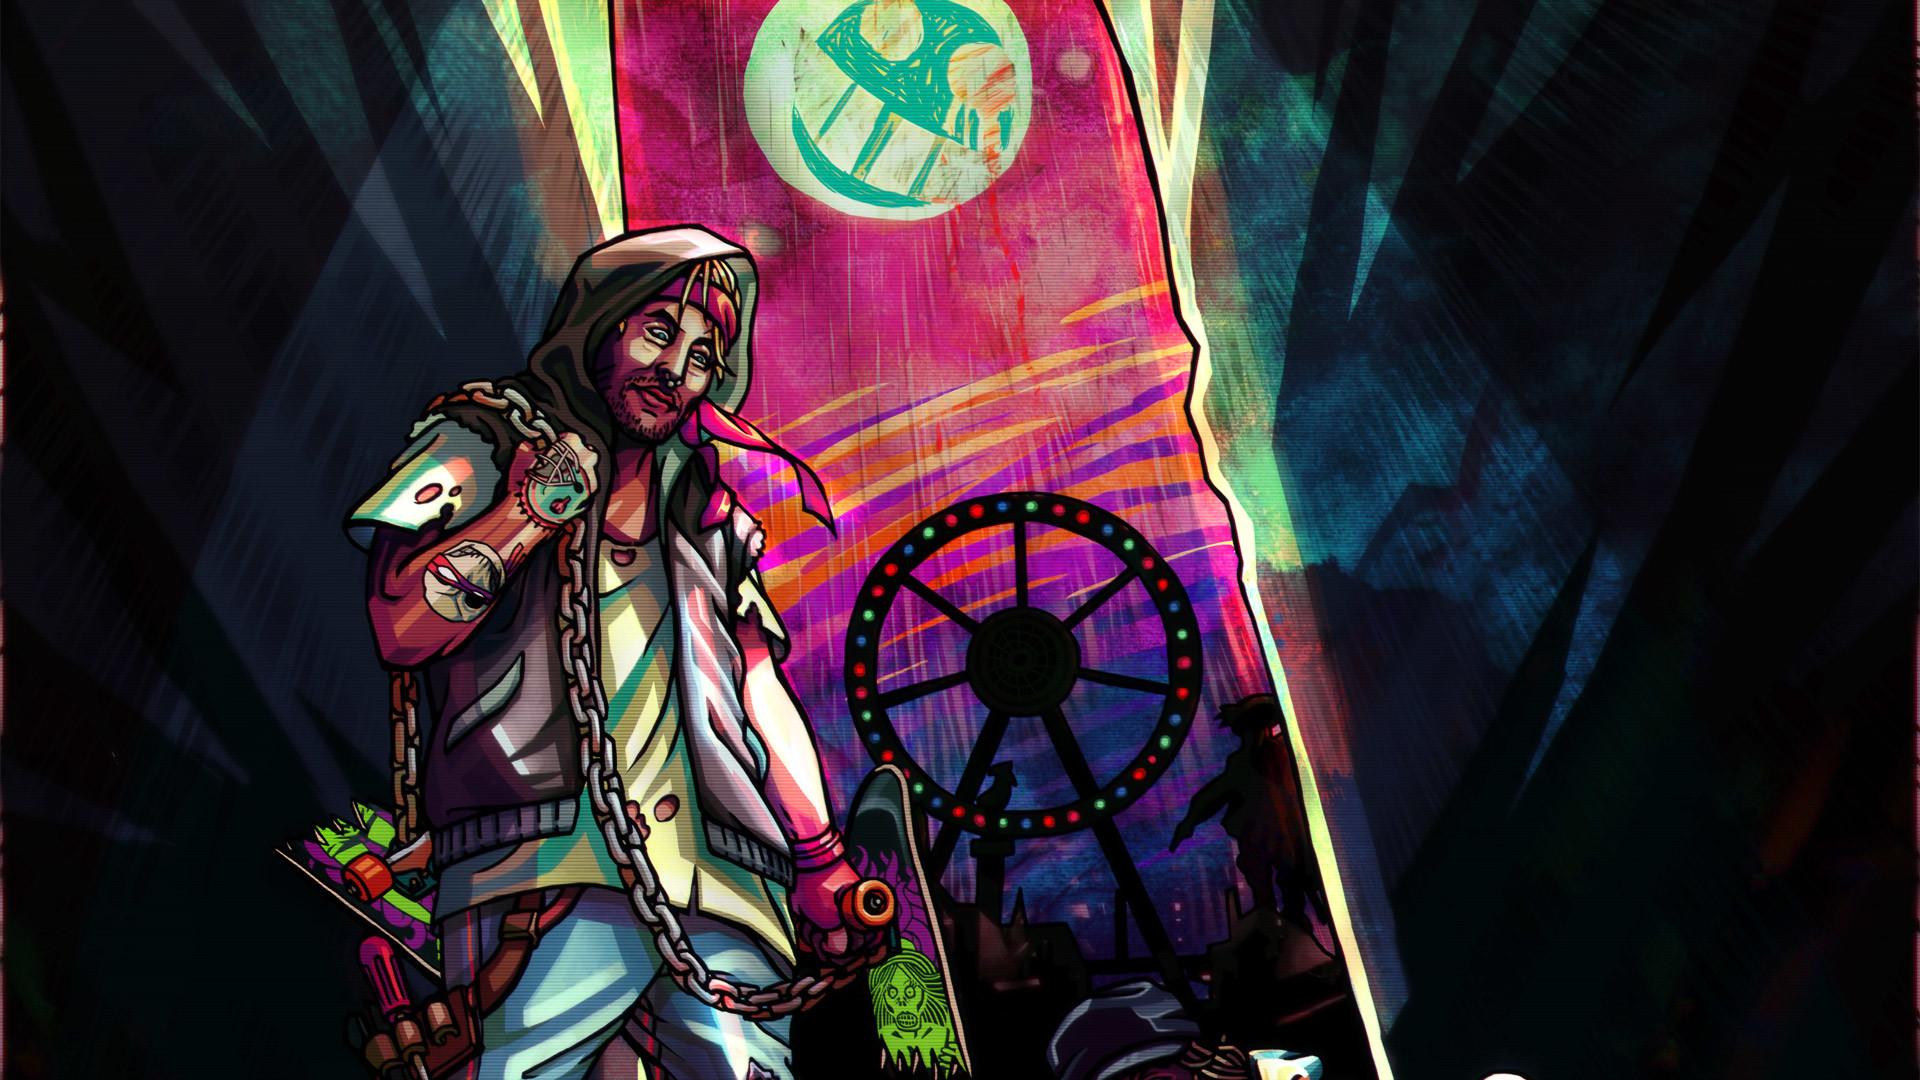 Free Hotline Miami 2: Wrong Number Wallpaper in 1920×1080